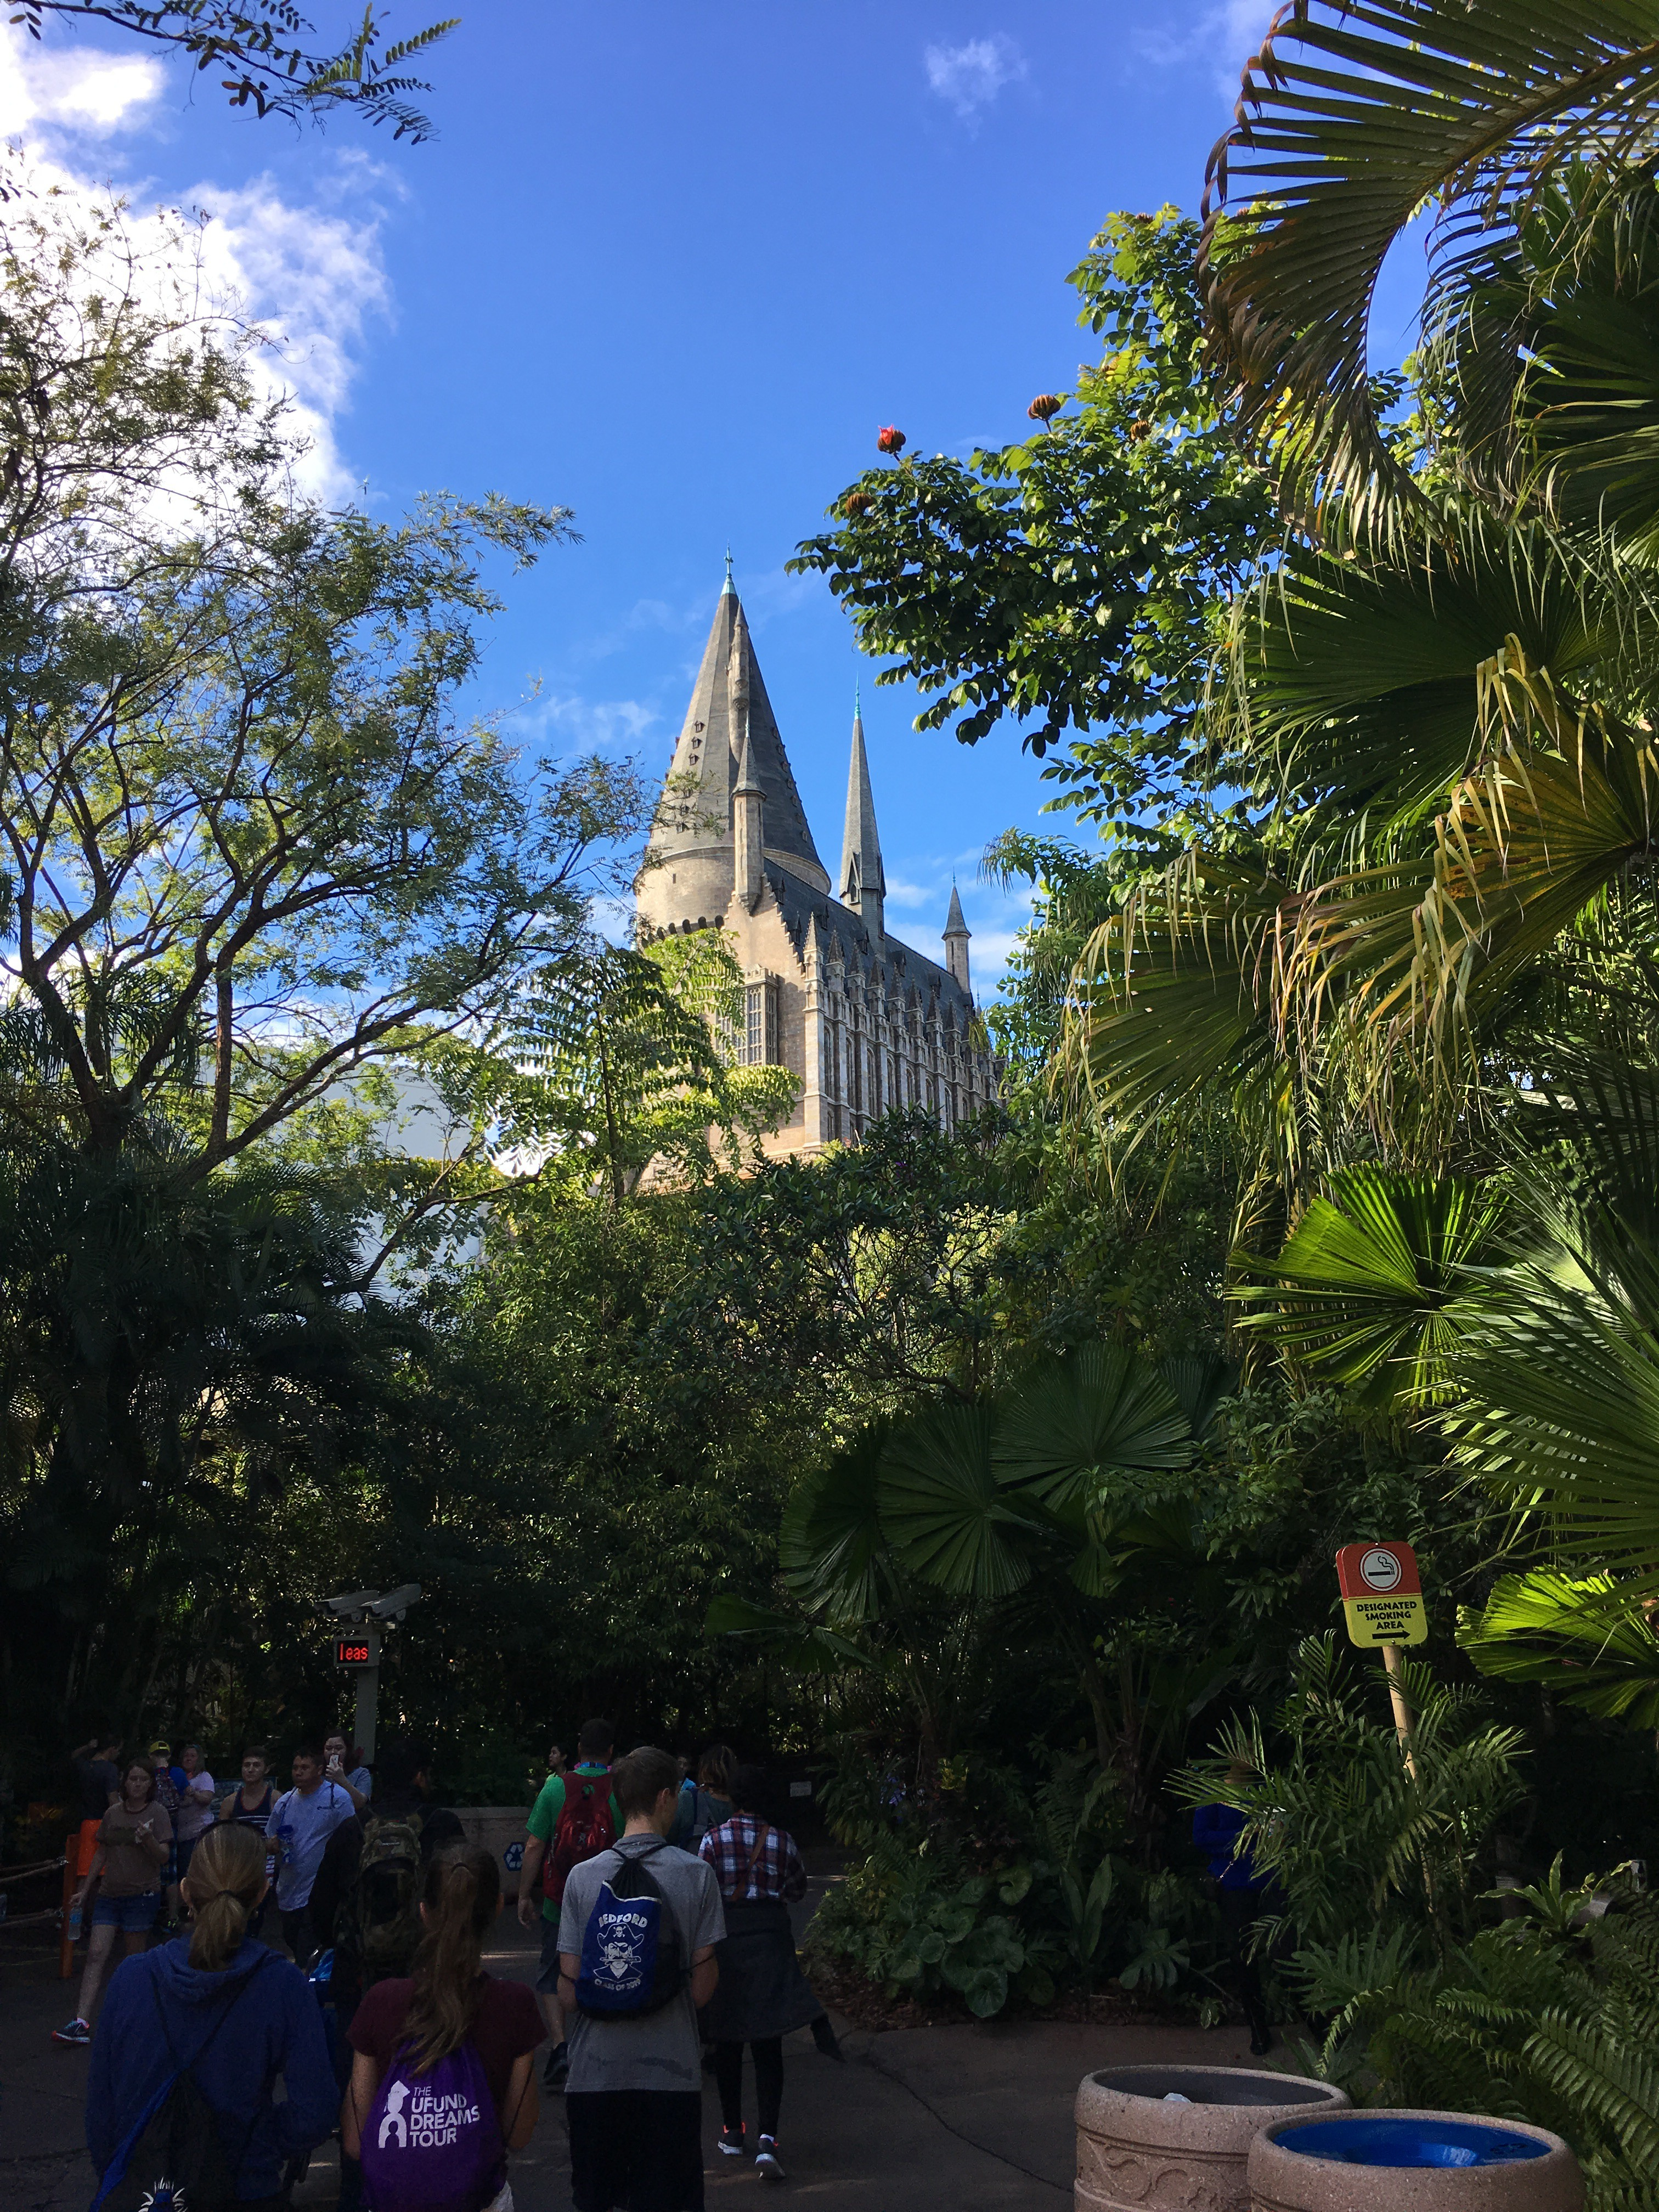 Hogwarts, as seen through the forests of Jurassic Park.